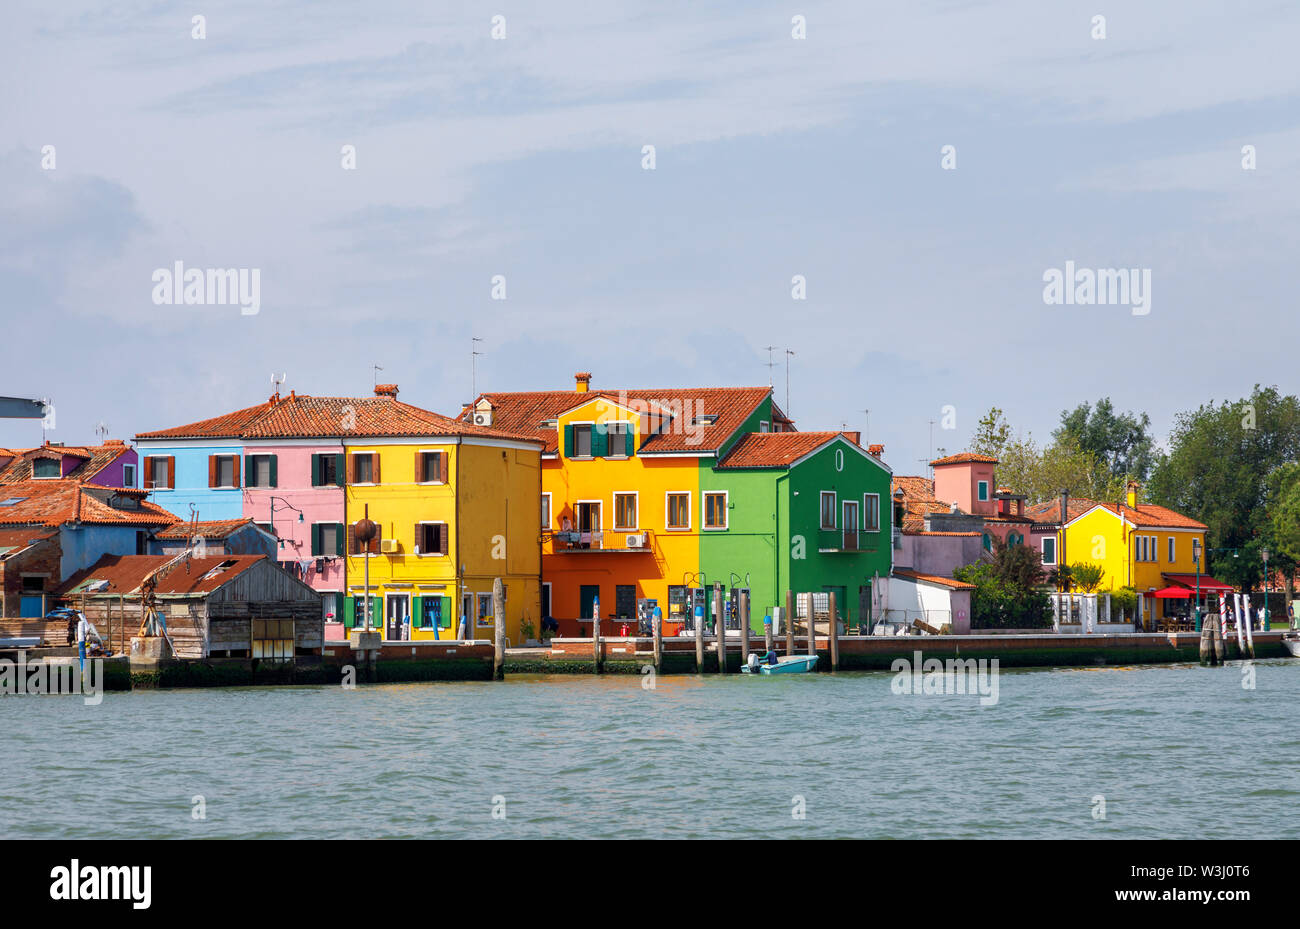 View of the shoreline of Burano, a picturesque small island in Venice Lagoon, Venice, Italy with typical brightly coloured houses on the waterfront - Stock Image